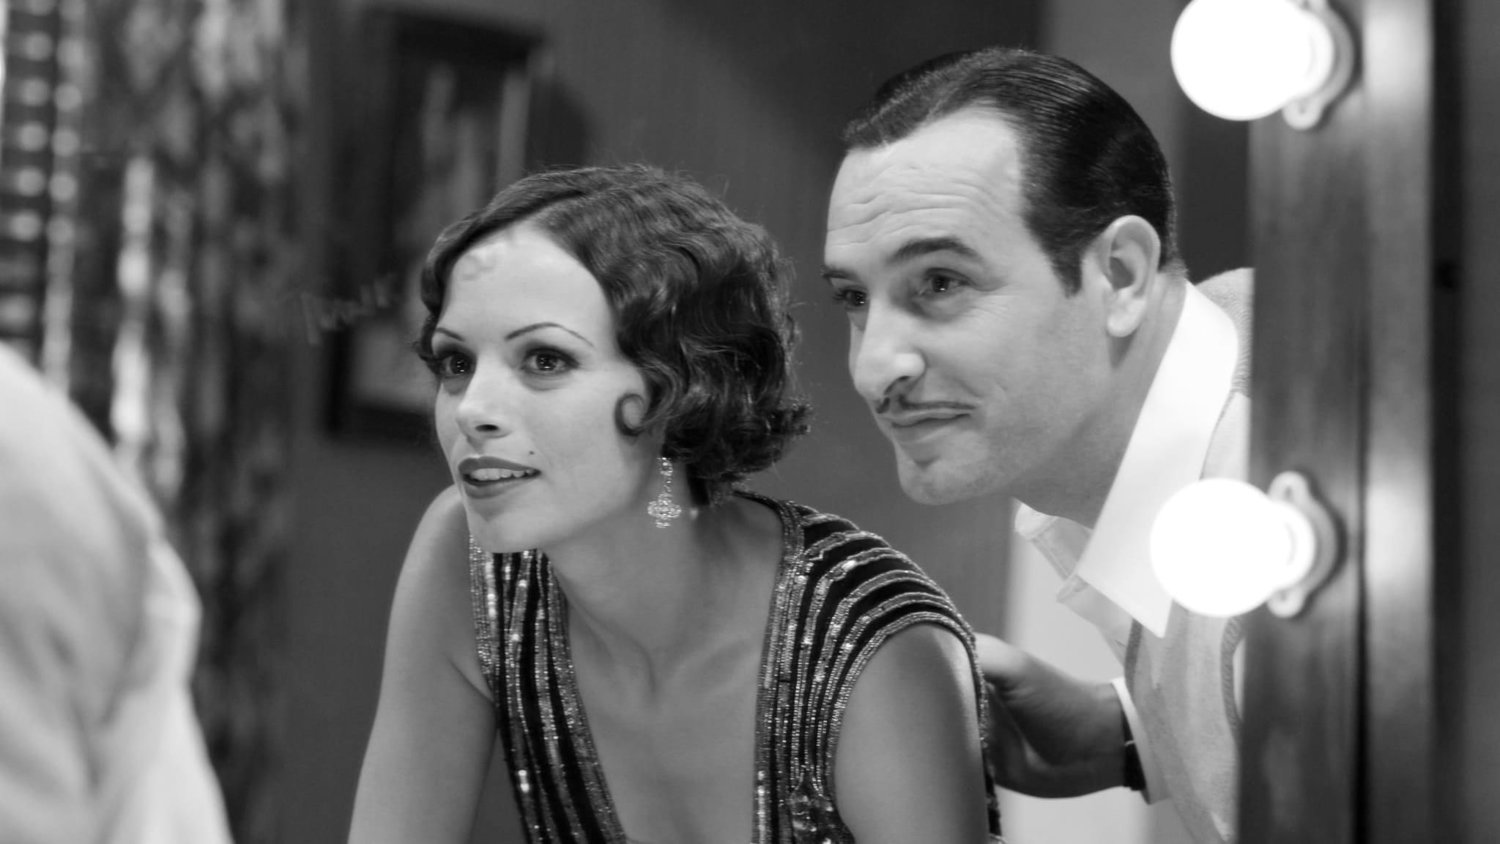 4. A silent movie, 'The Artist,' silenced the doubters.